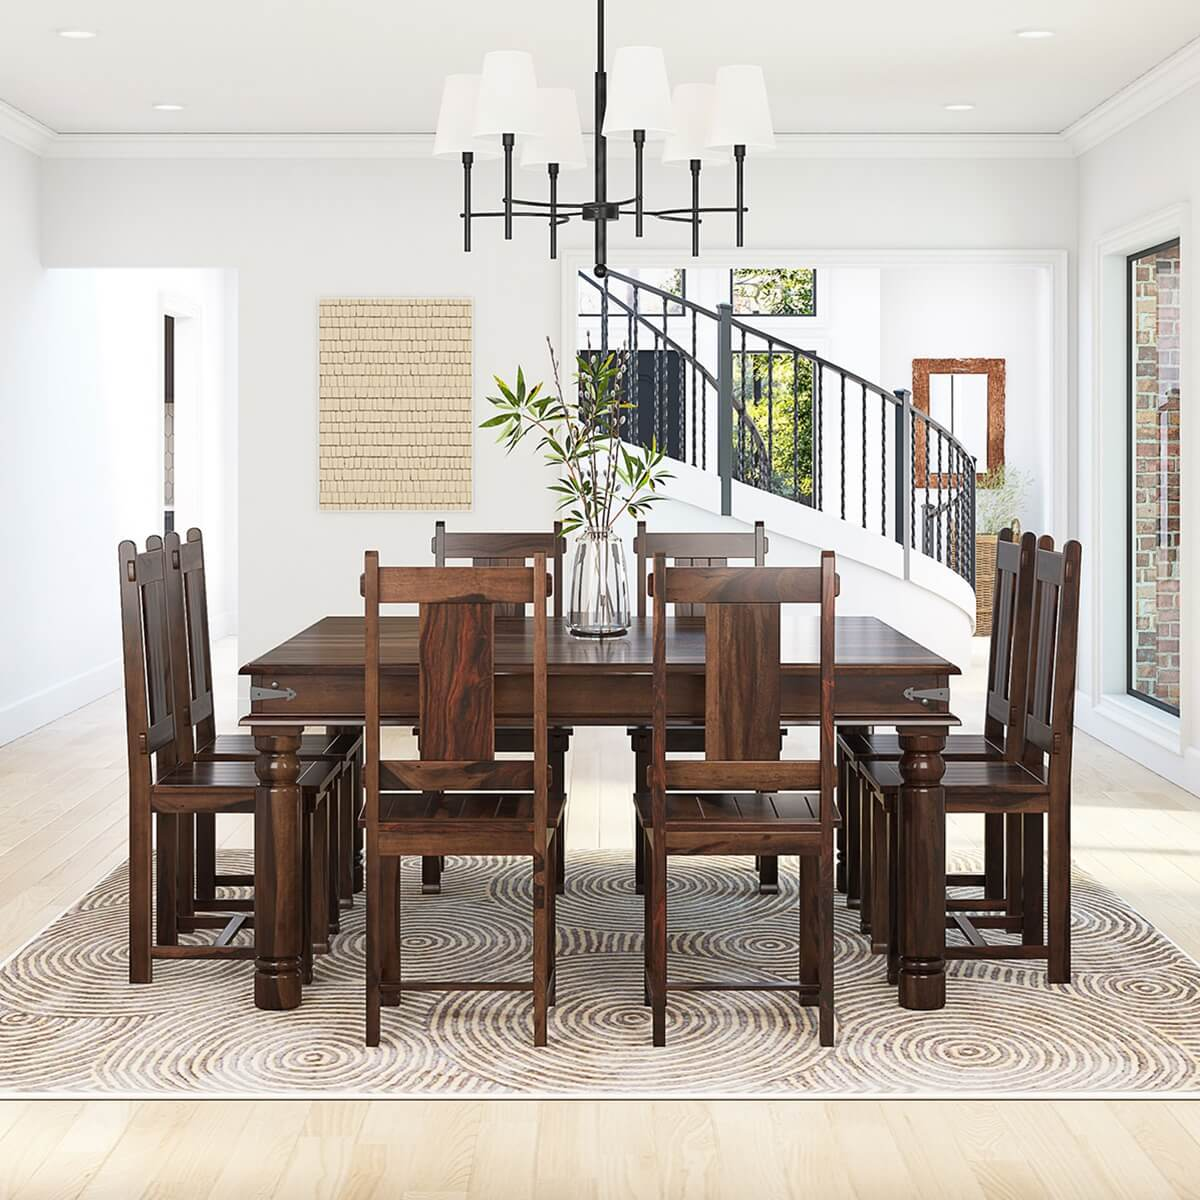 Rustic square large solid wood furniture dining table chair set